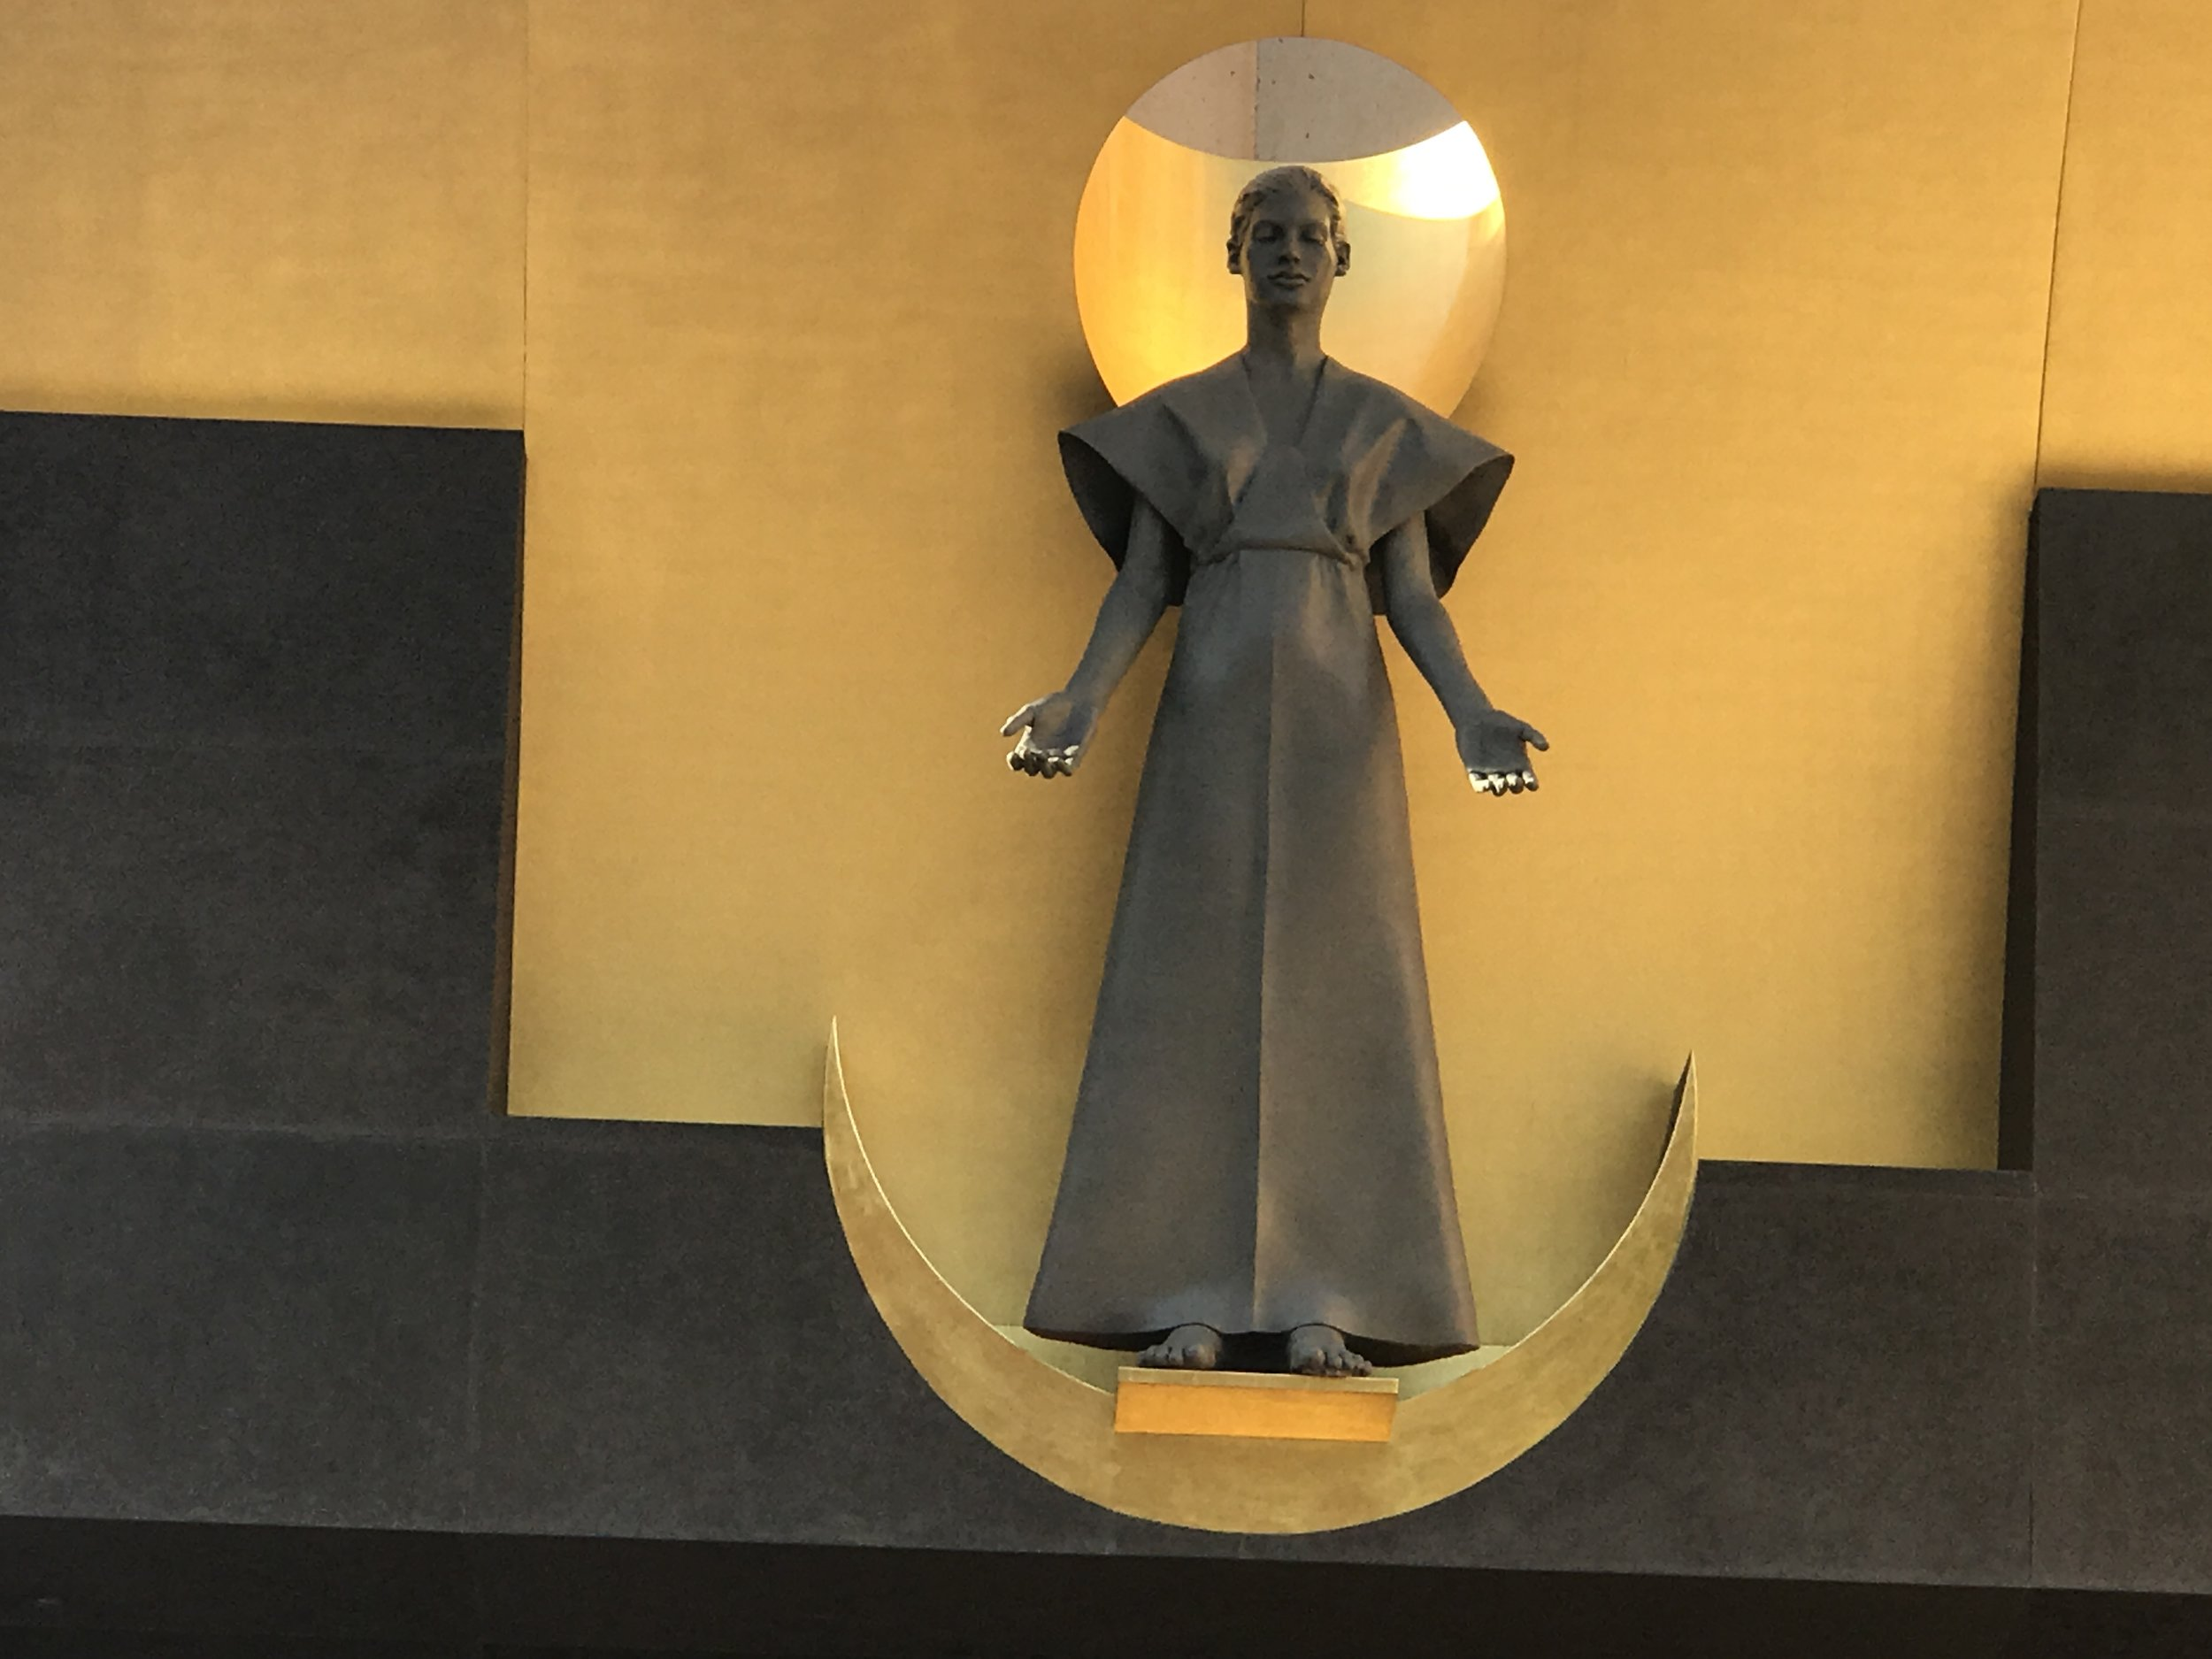 Statue of Virgin Mother at Entrance of Cathedral